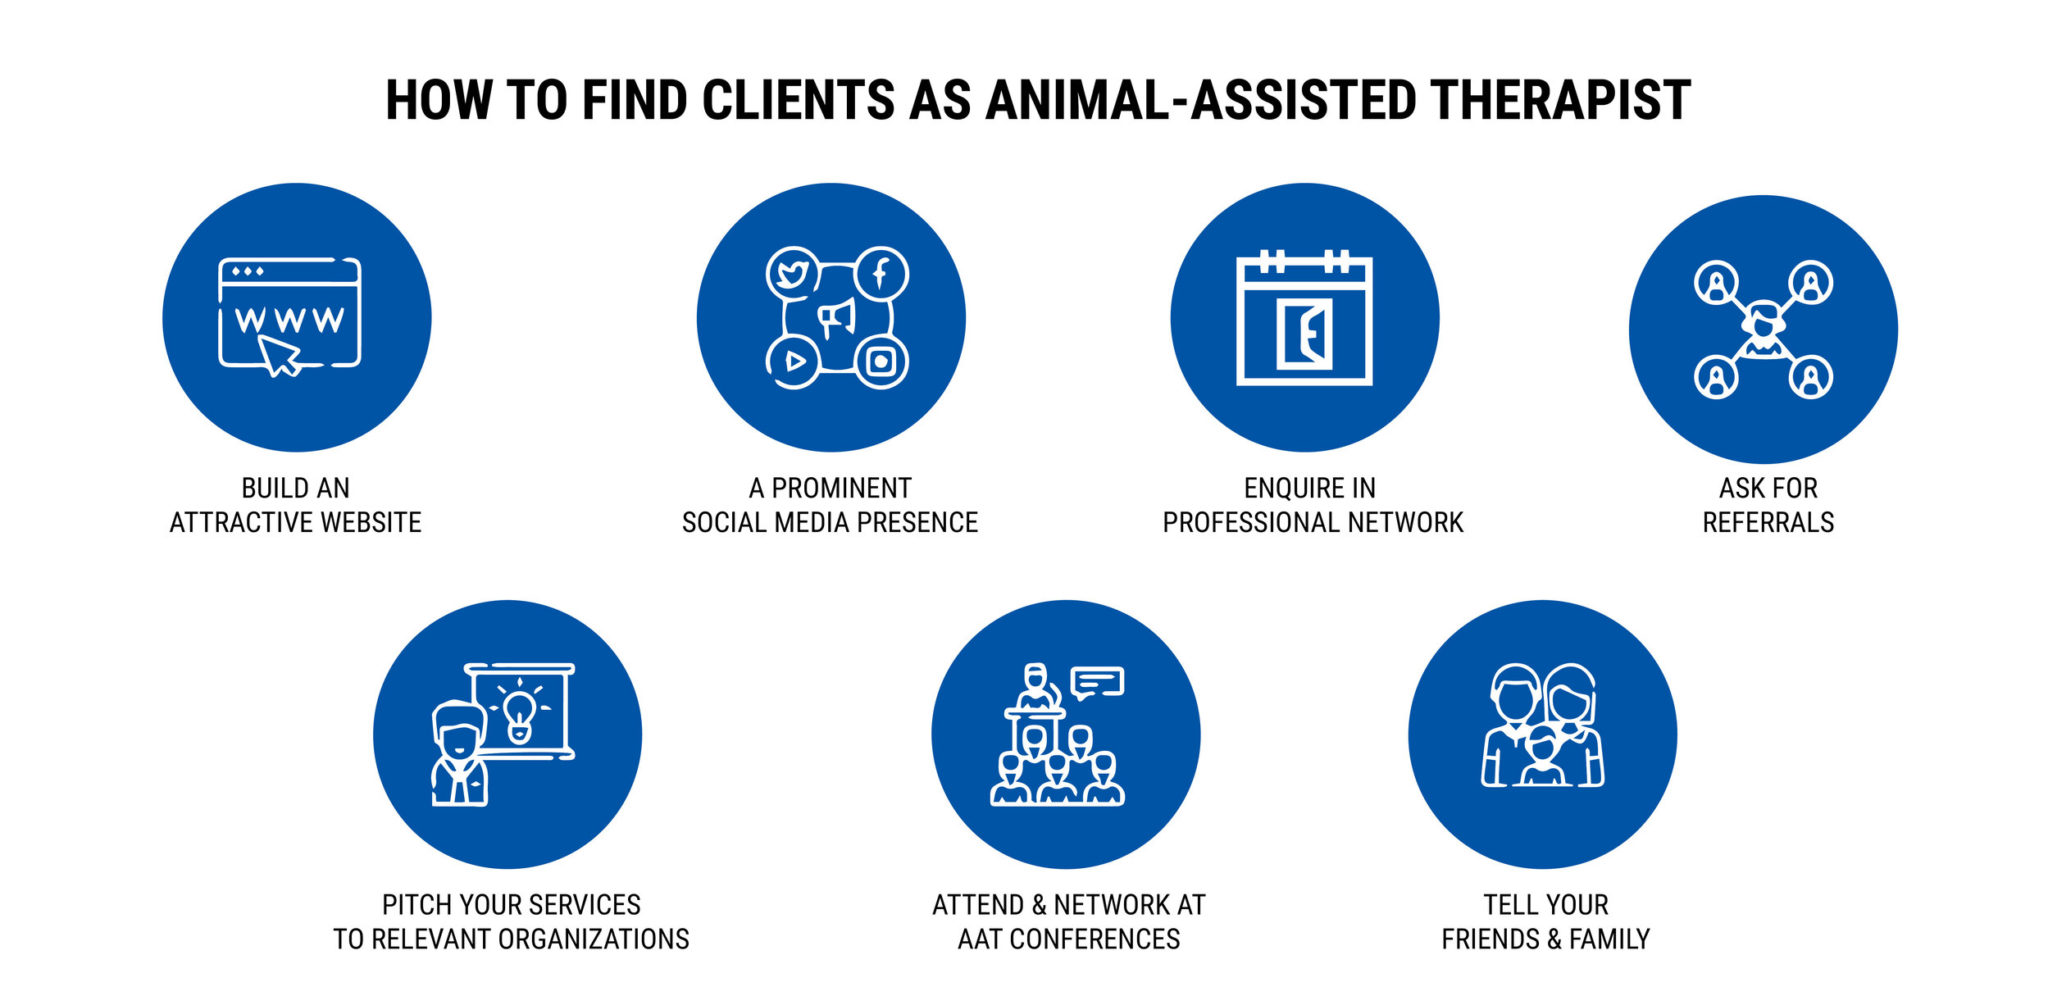 HOW TO FIND CLIENTS AS ANIMAL-ASSISTED THERAPIST